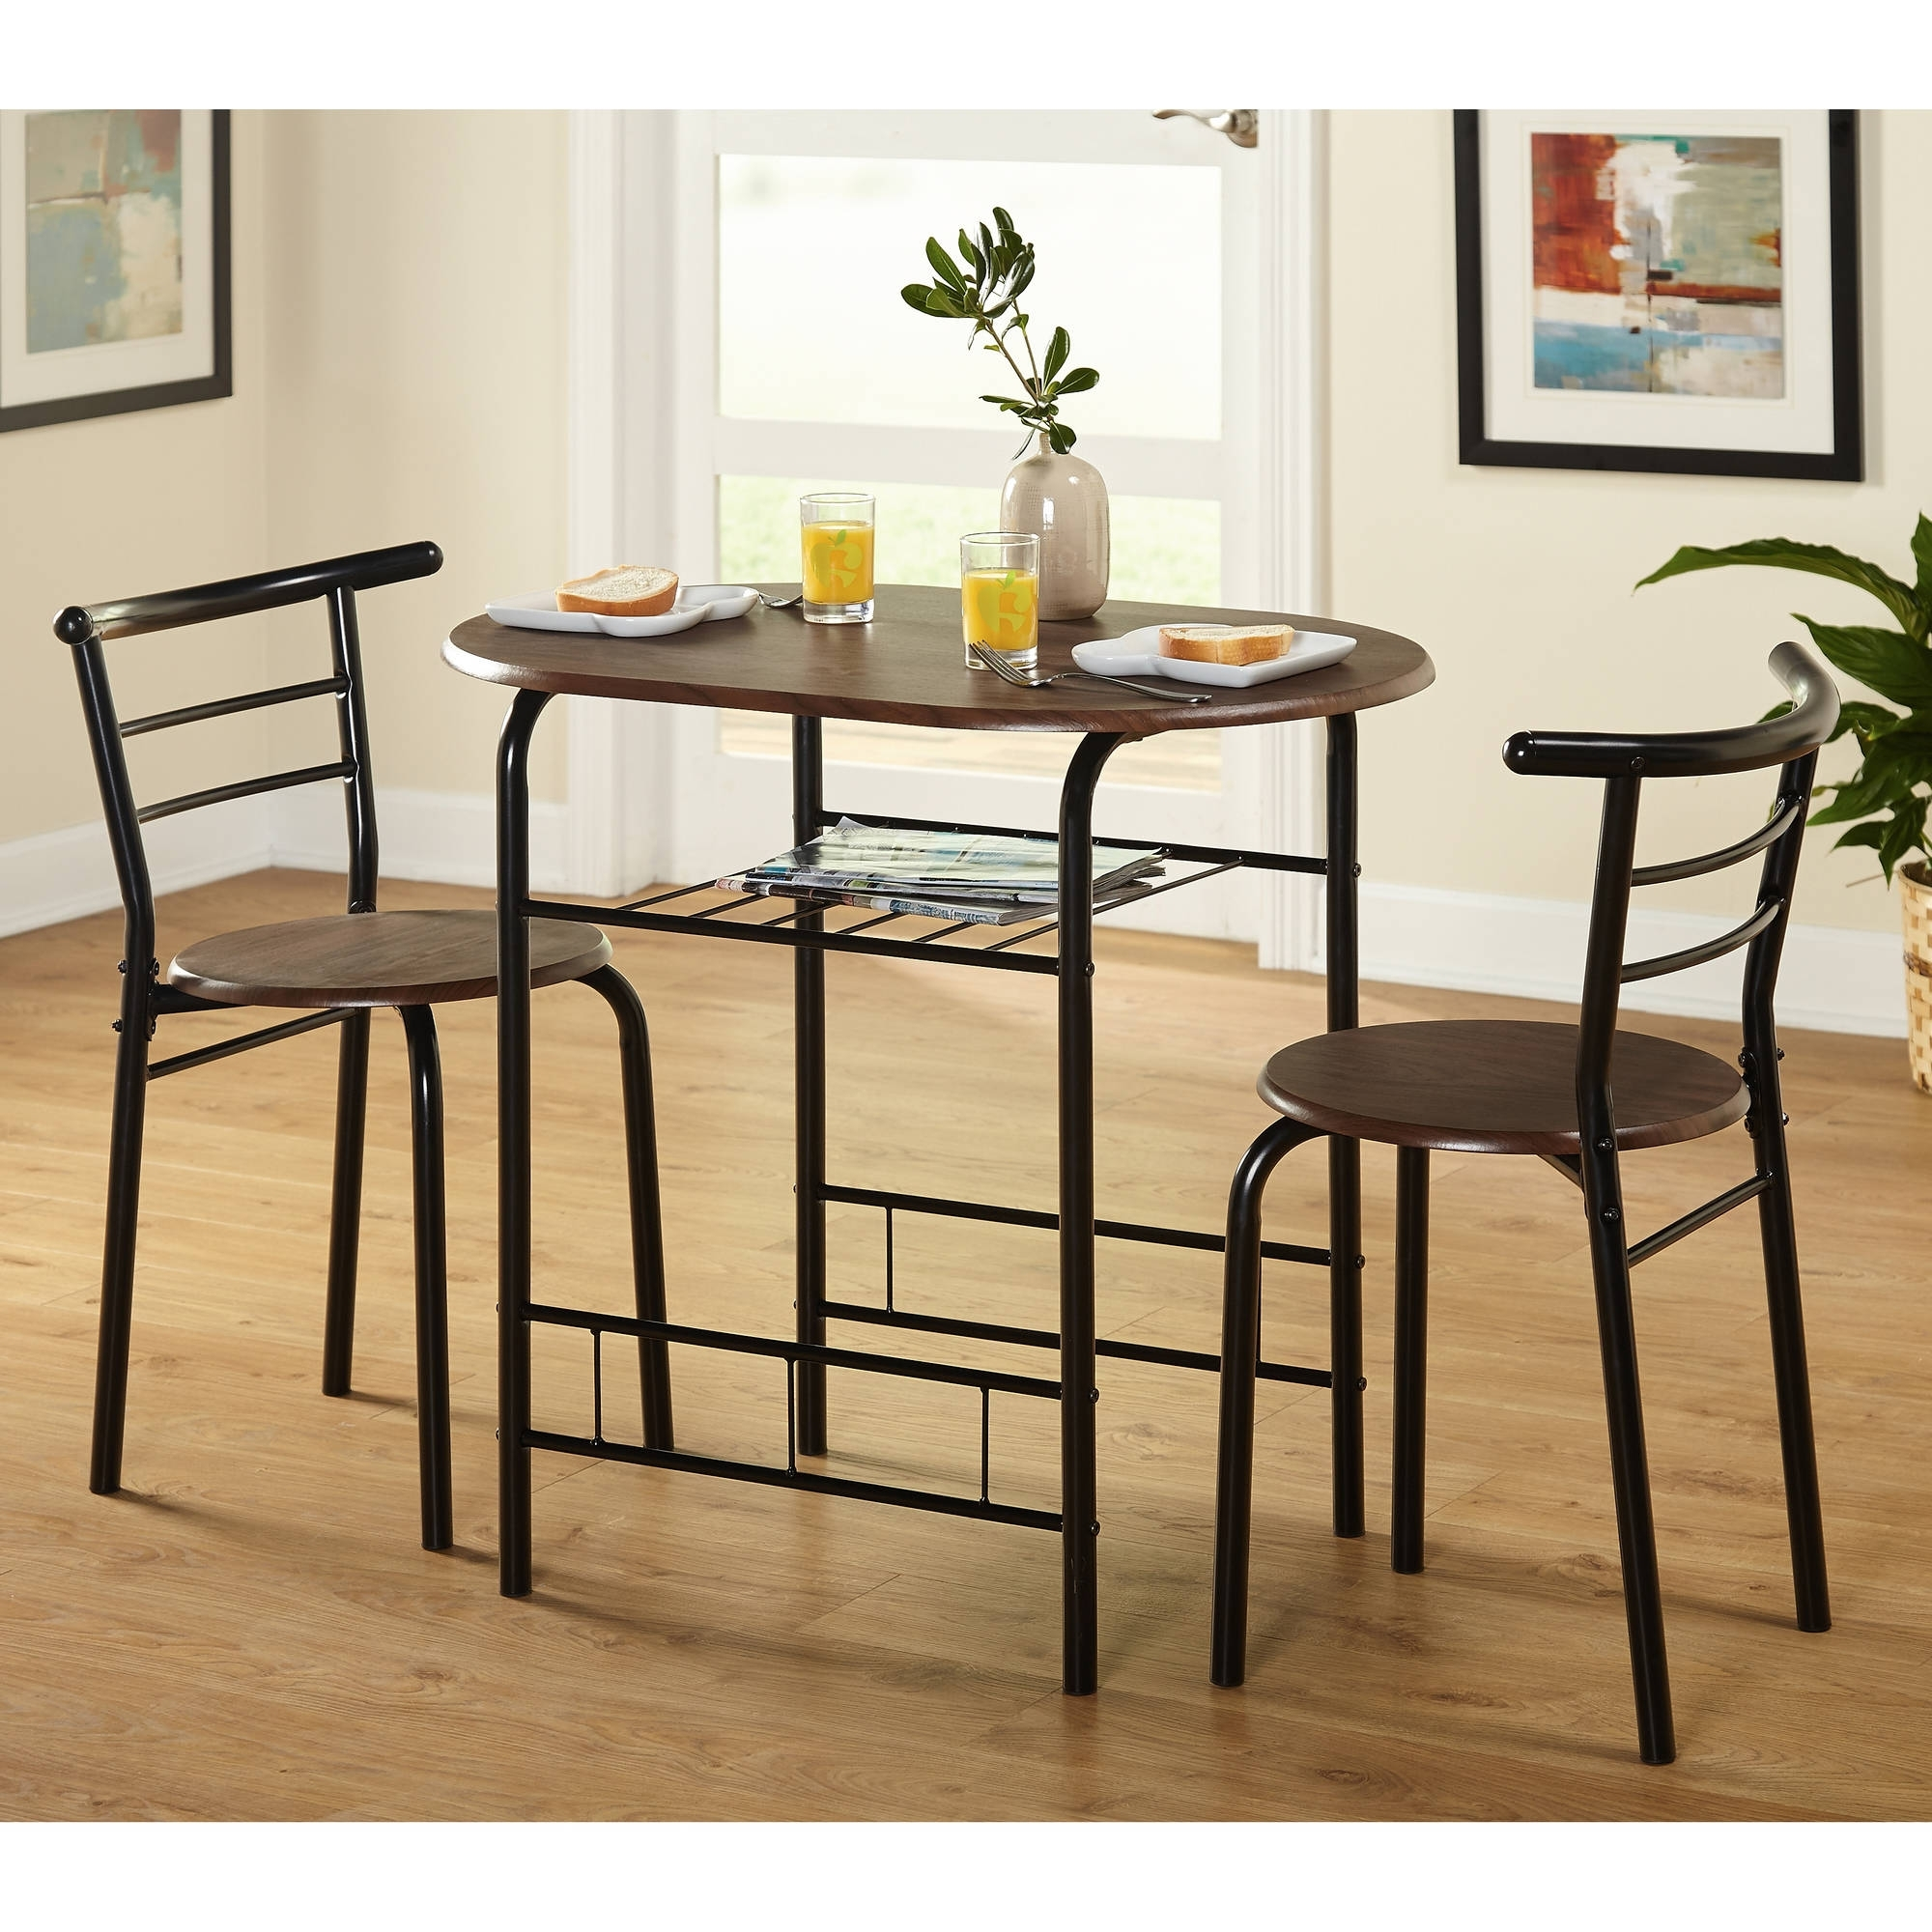 Famous Cheap Dining Tables Sets Intended For Tms 3 Piece Bistro Dining Set – Walmart (View 13 of 25)